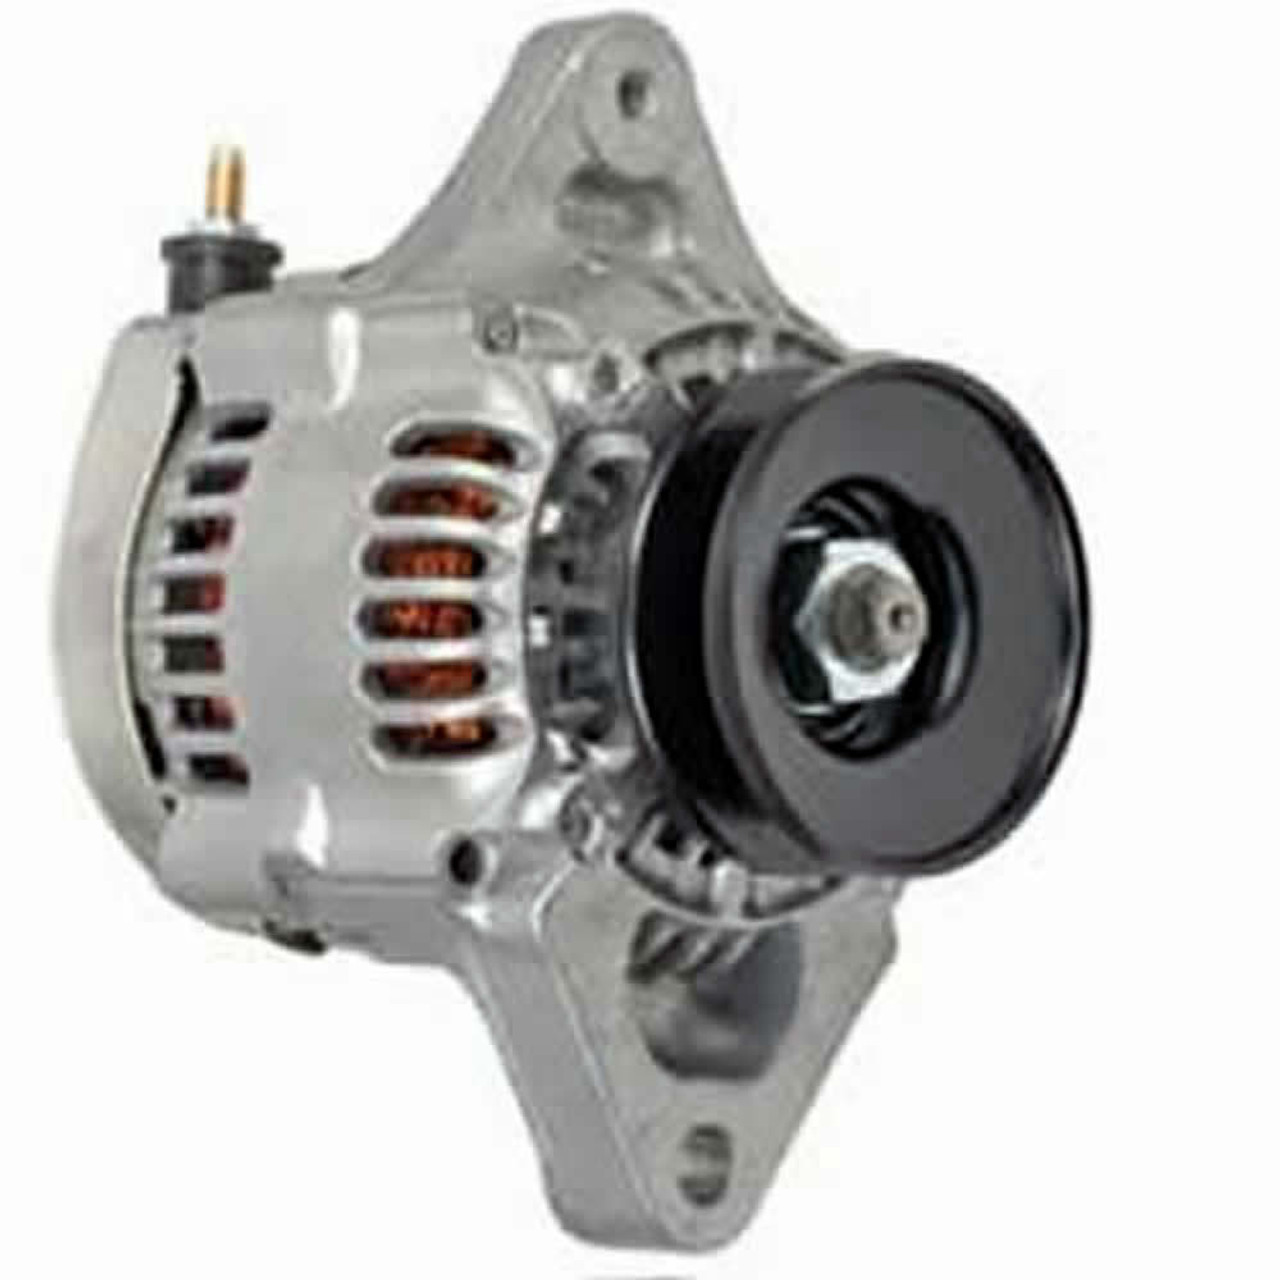 New Alternator Fits John Deere Tractor Yanmar 3032E 3038E 3120 3320 3520 3720